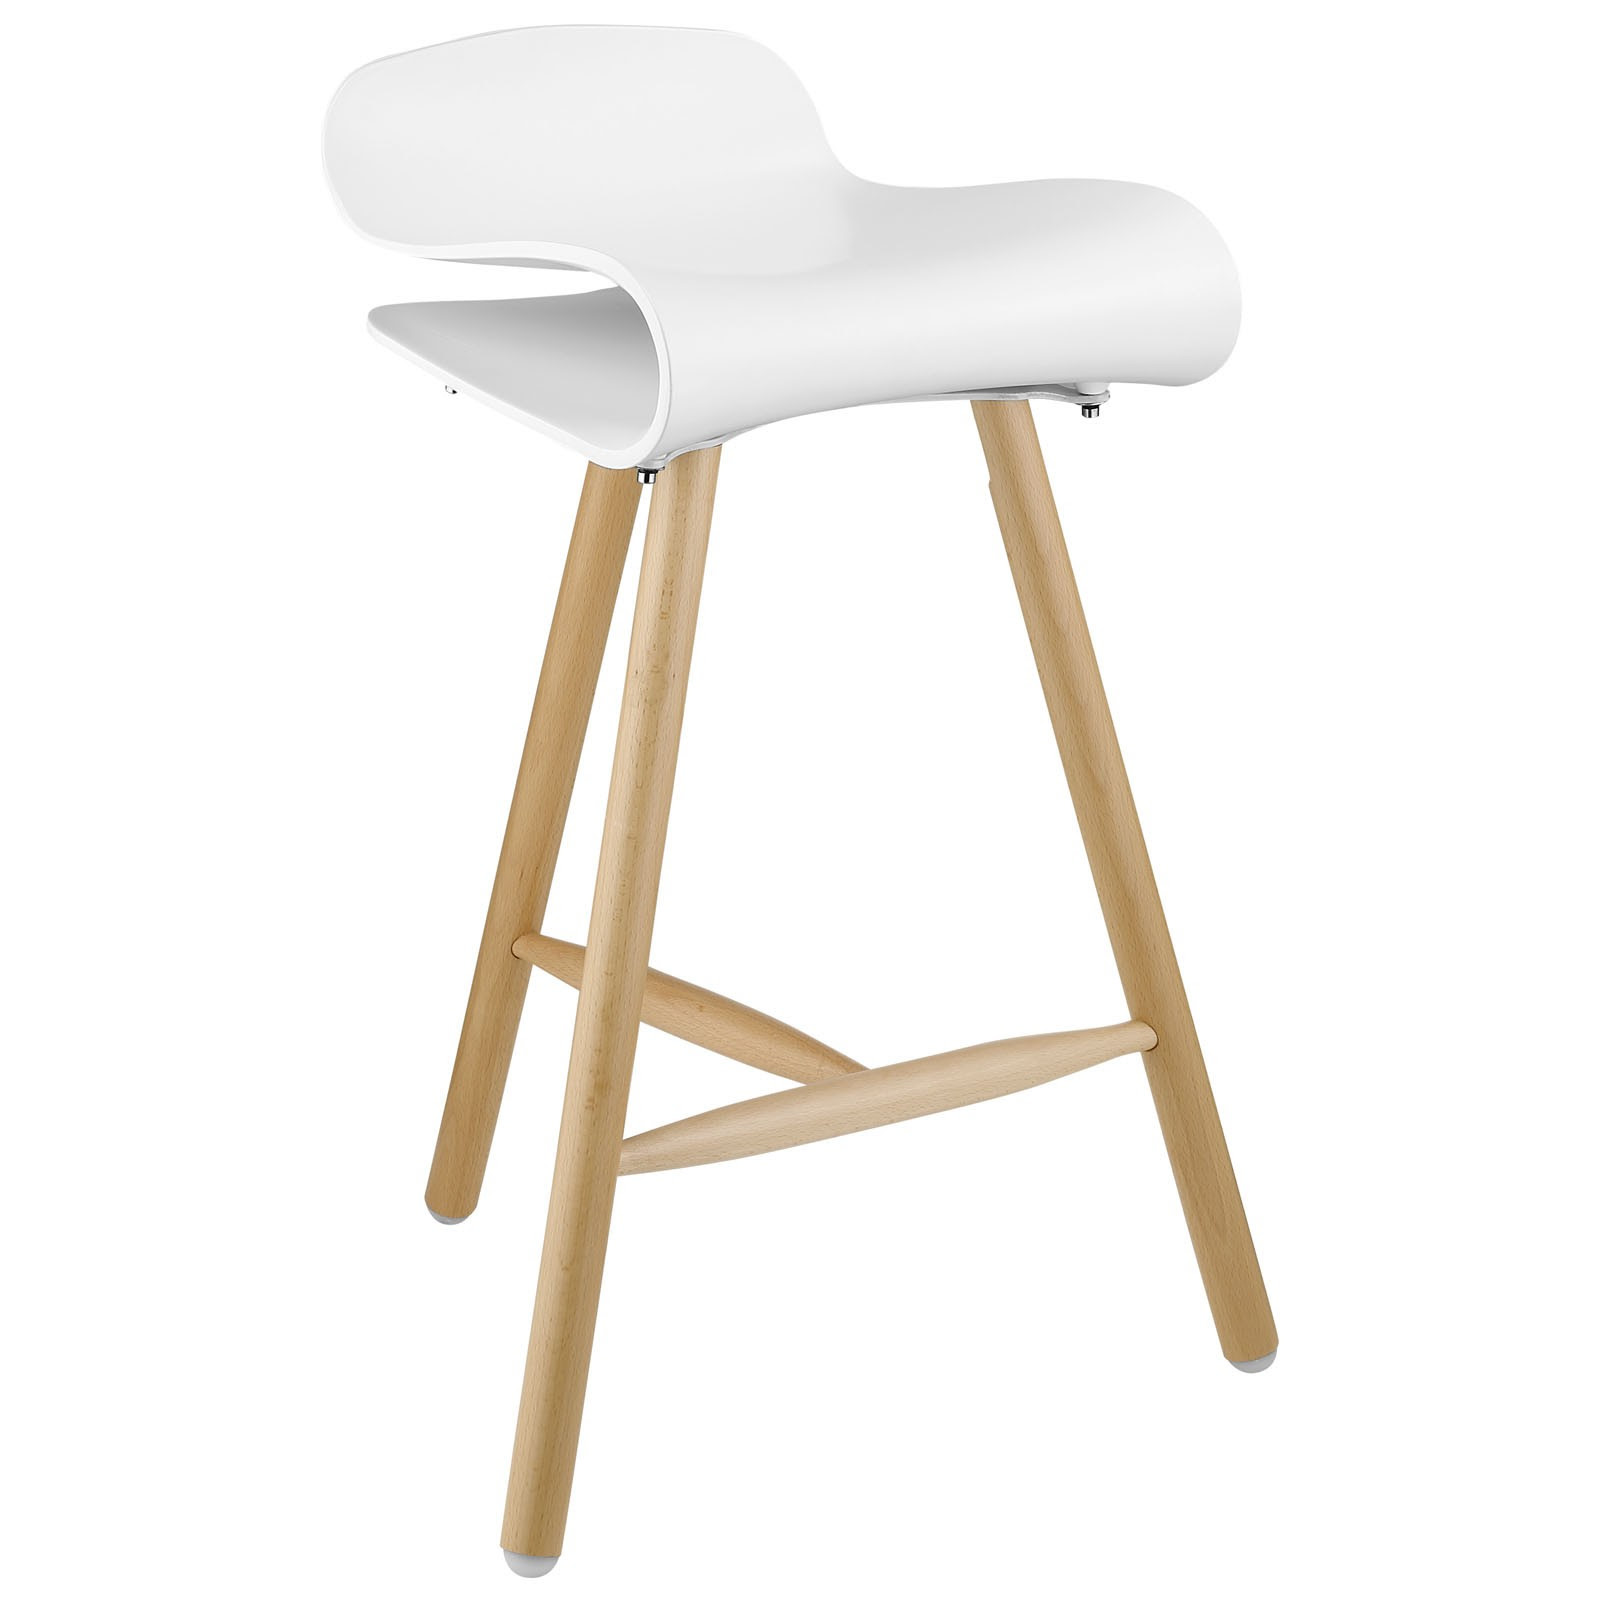 calvin white wood bar stools in modern design with wooden leg and curved seating for kitchen furniture ideas